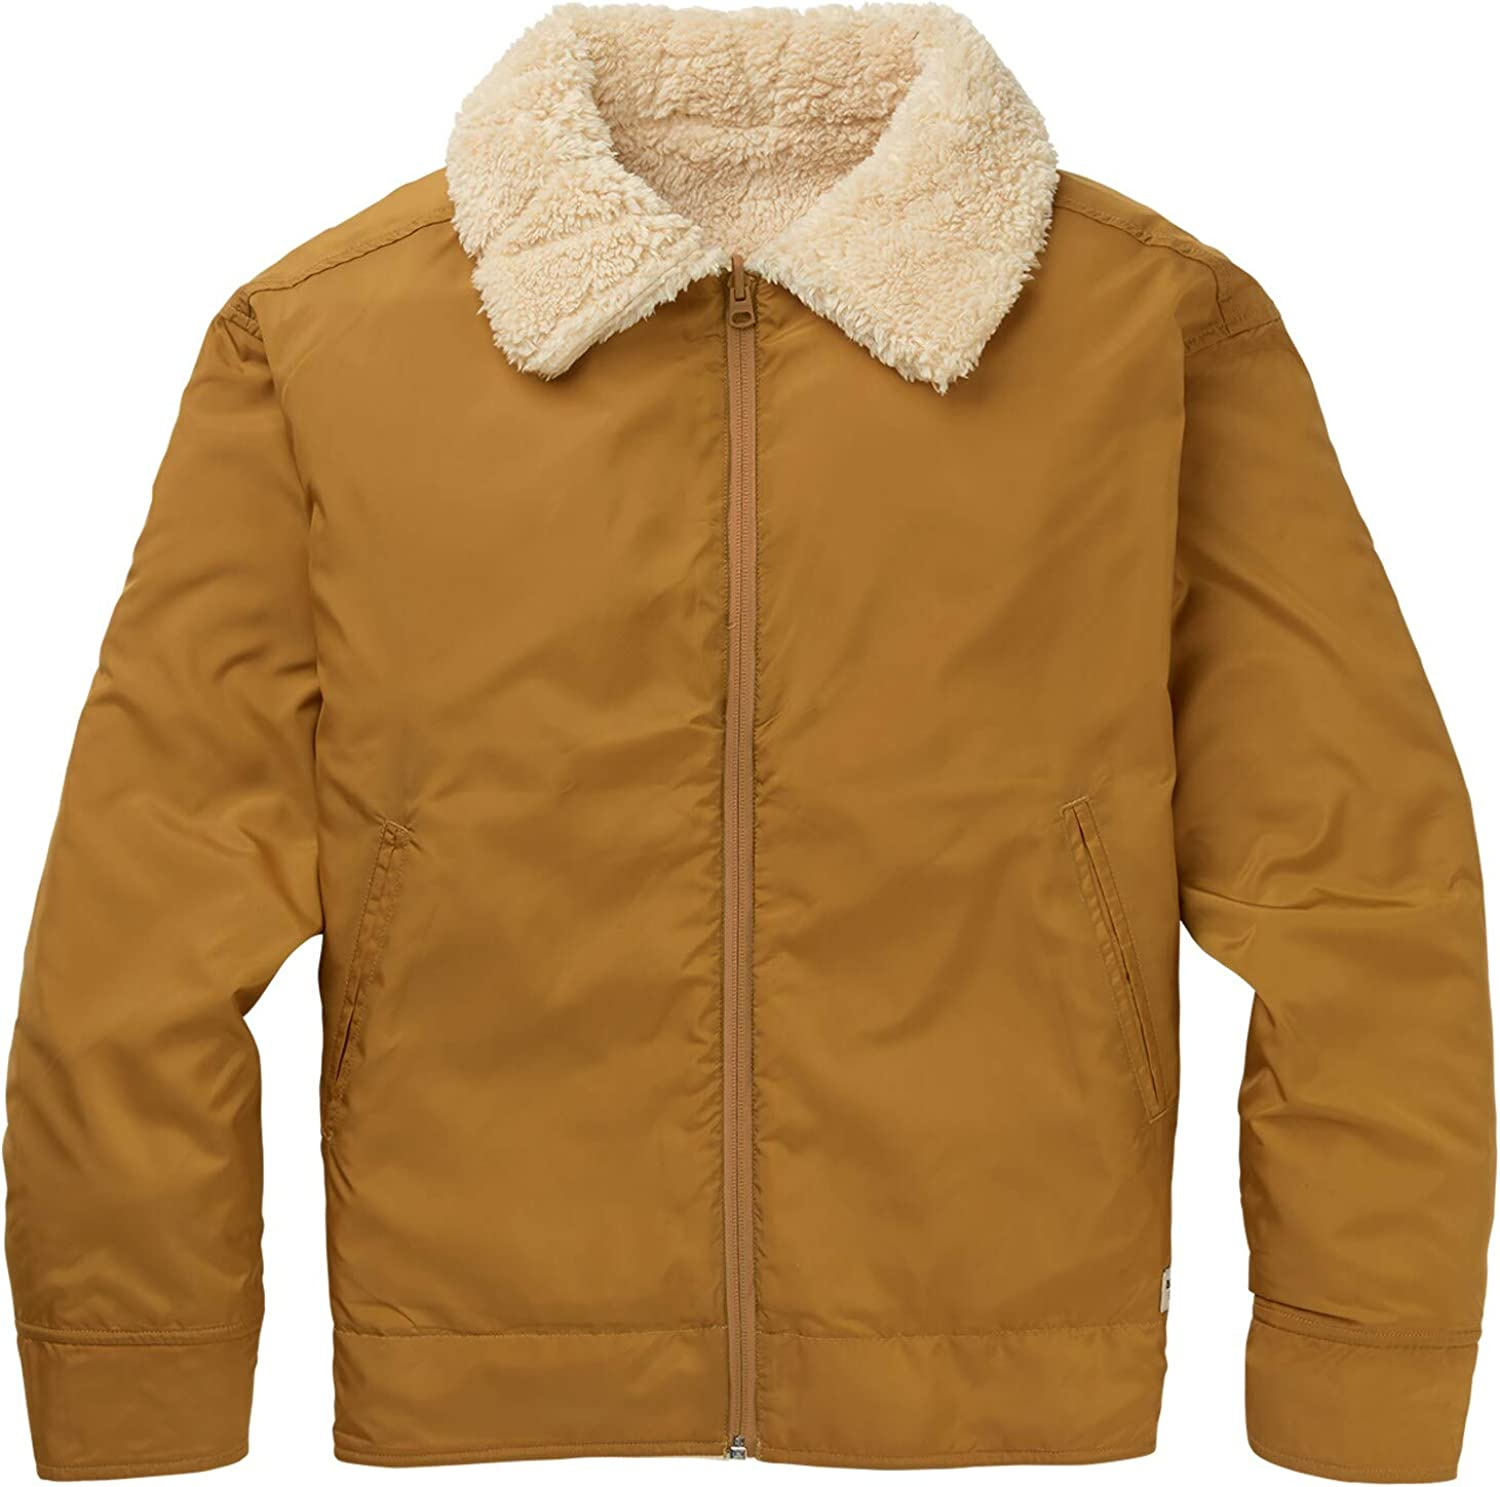 Purchase Burton Women's At the price of surprise Lynx Jacket Reversible